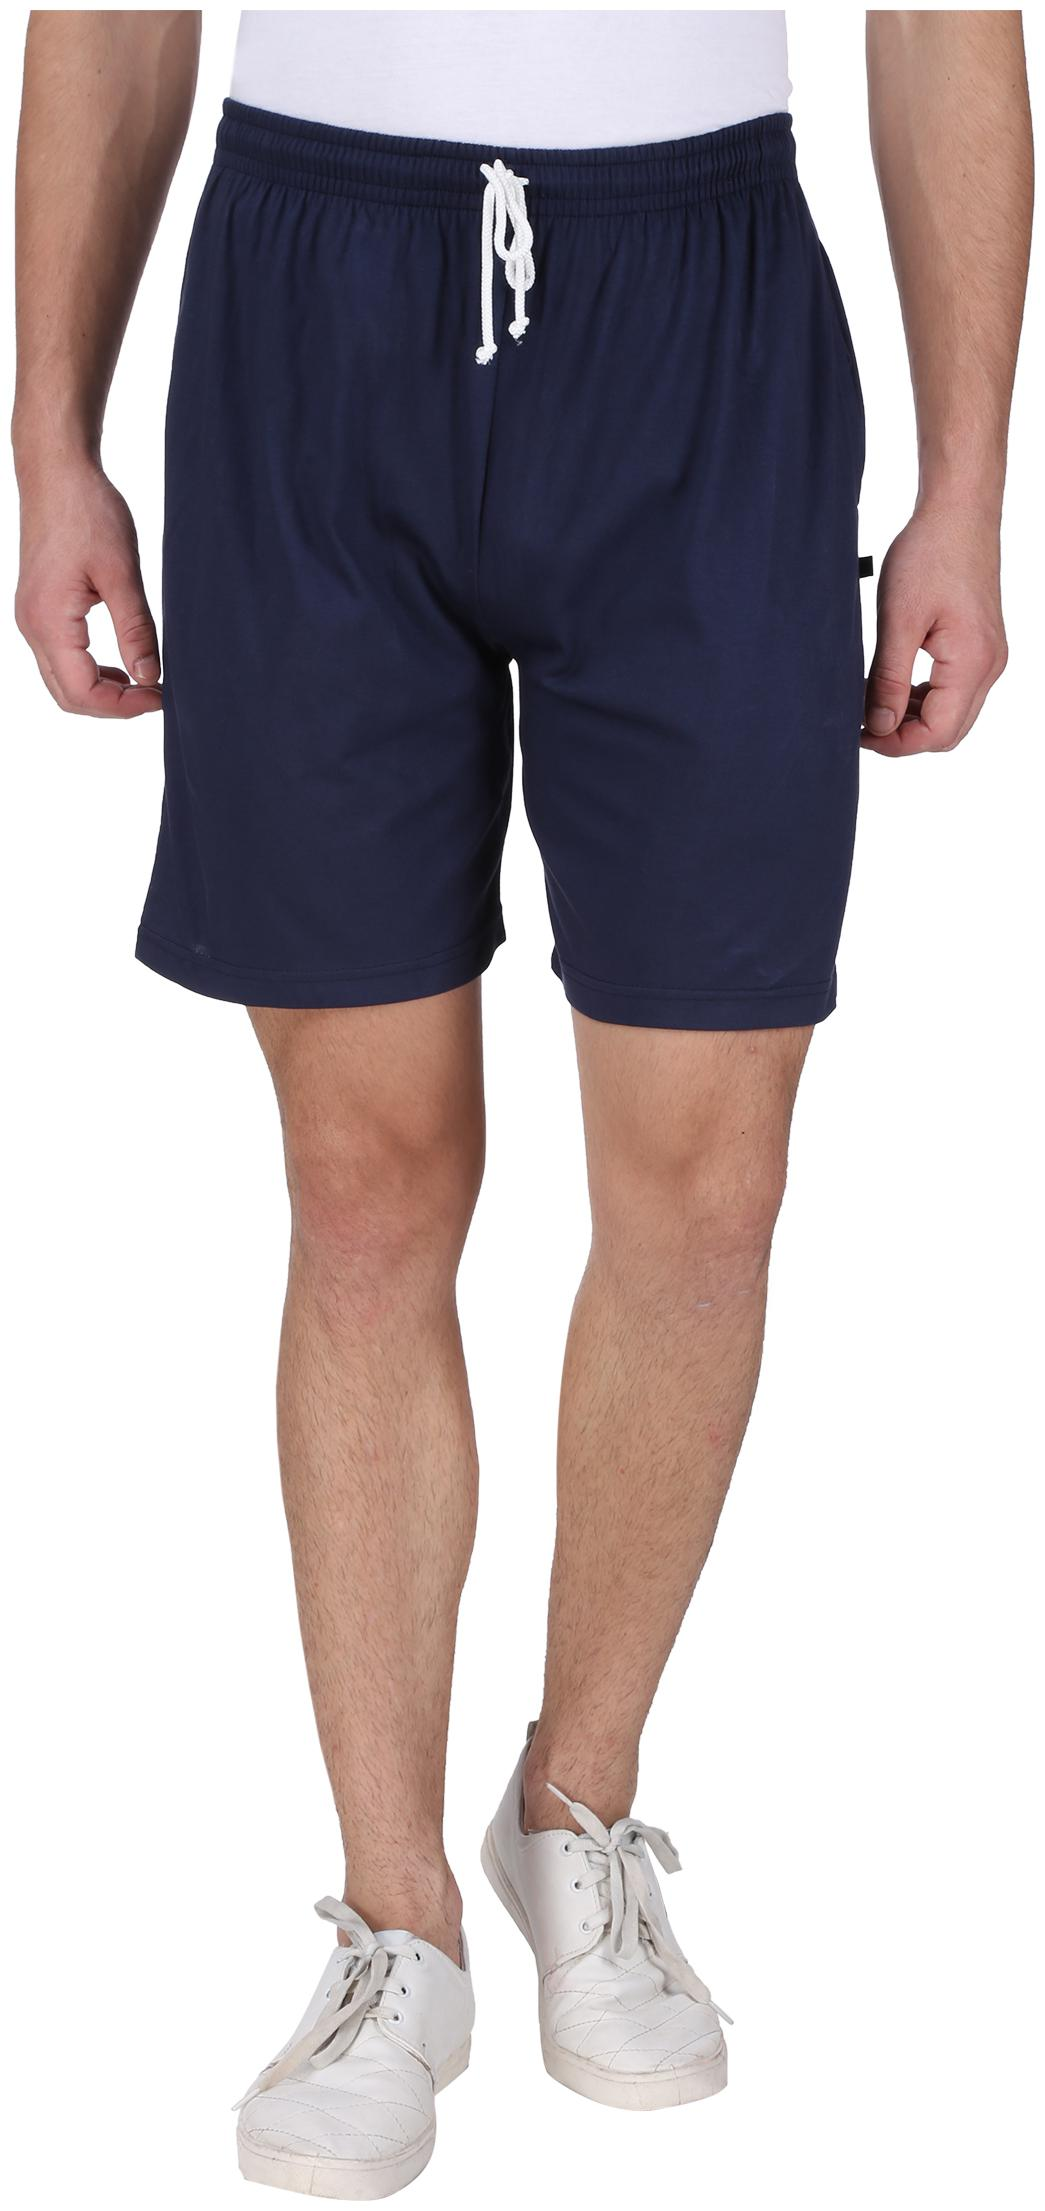 SHORT PANT - HP02N - (NAVY BLUE).